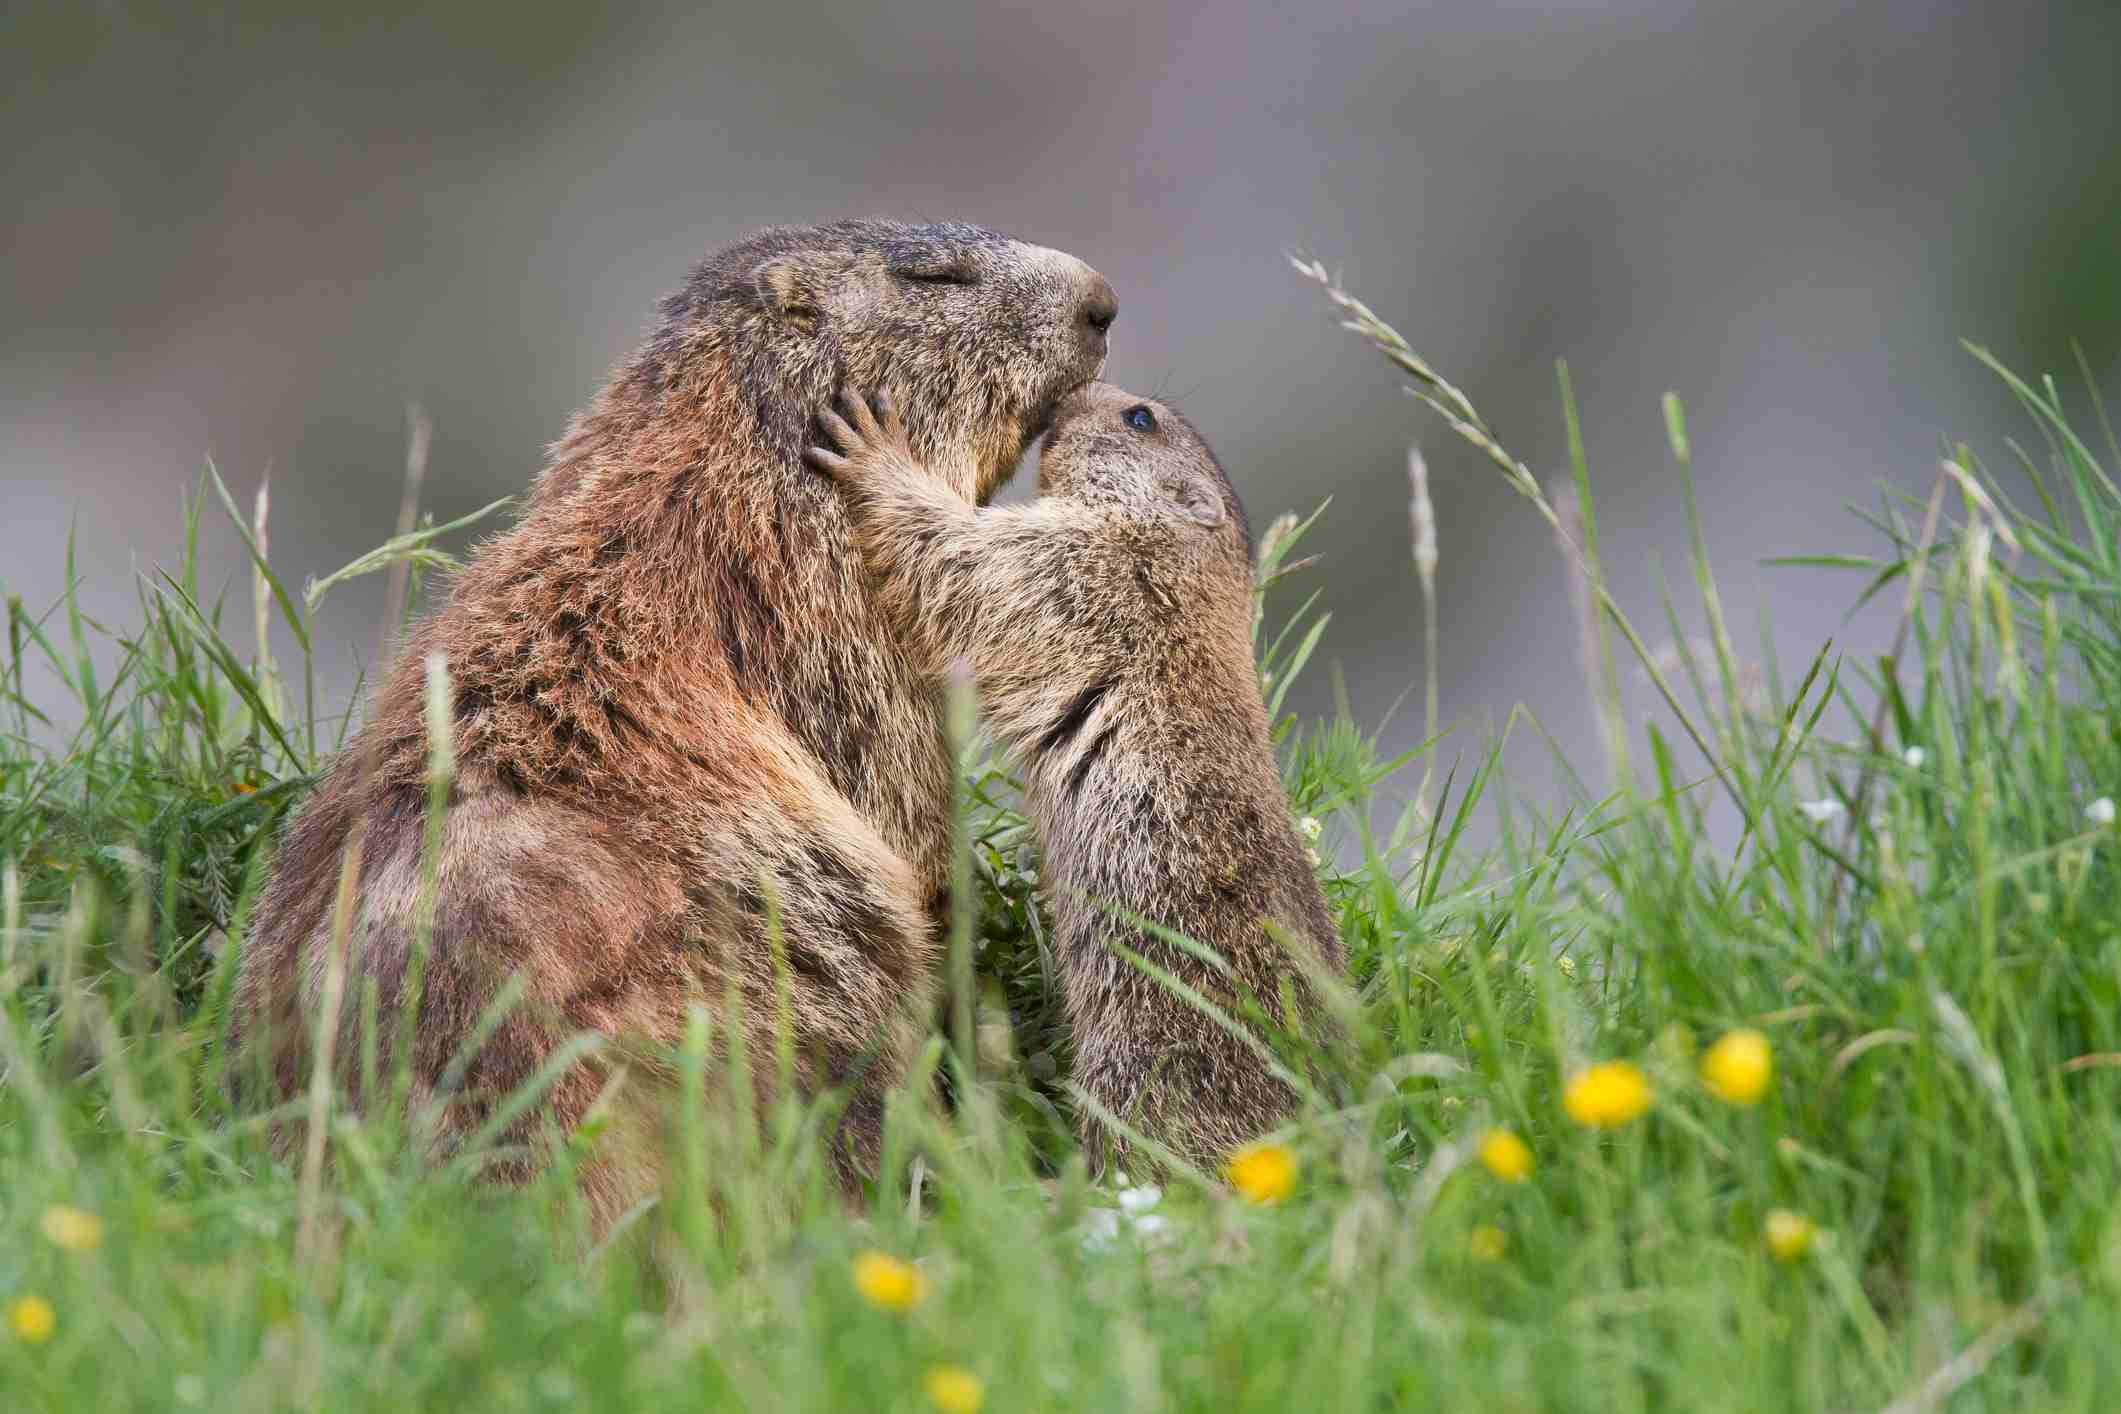 Baby groundhogs look like miniature versions of the adults.